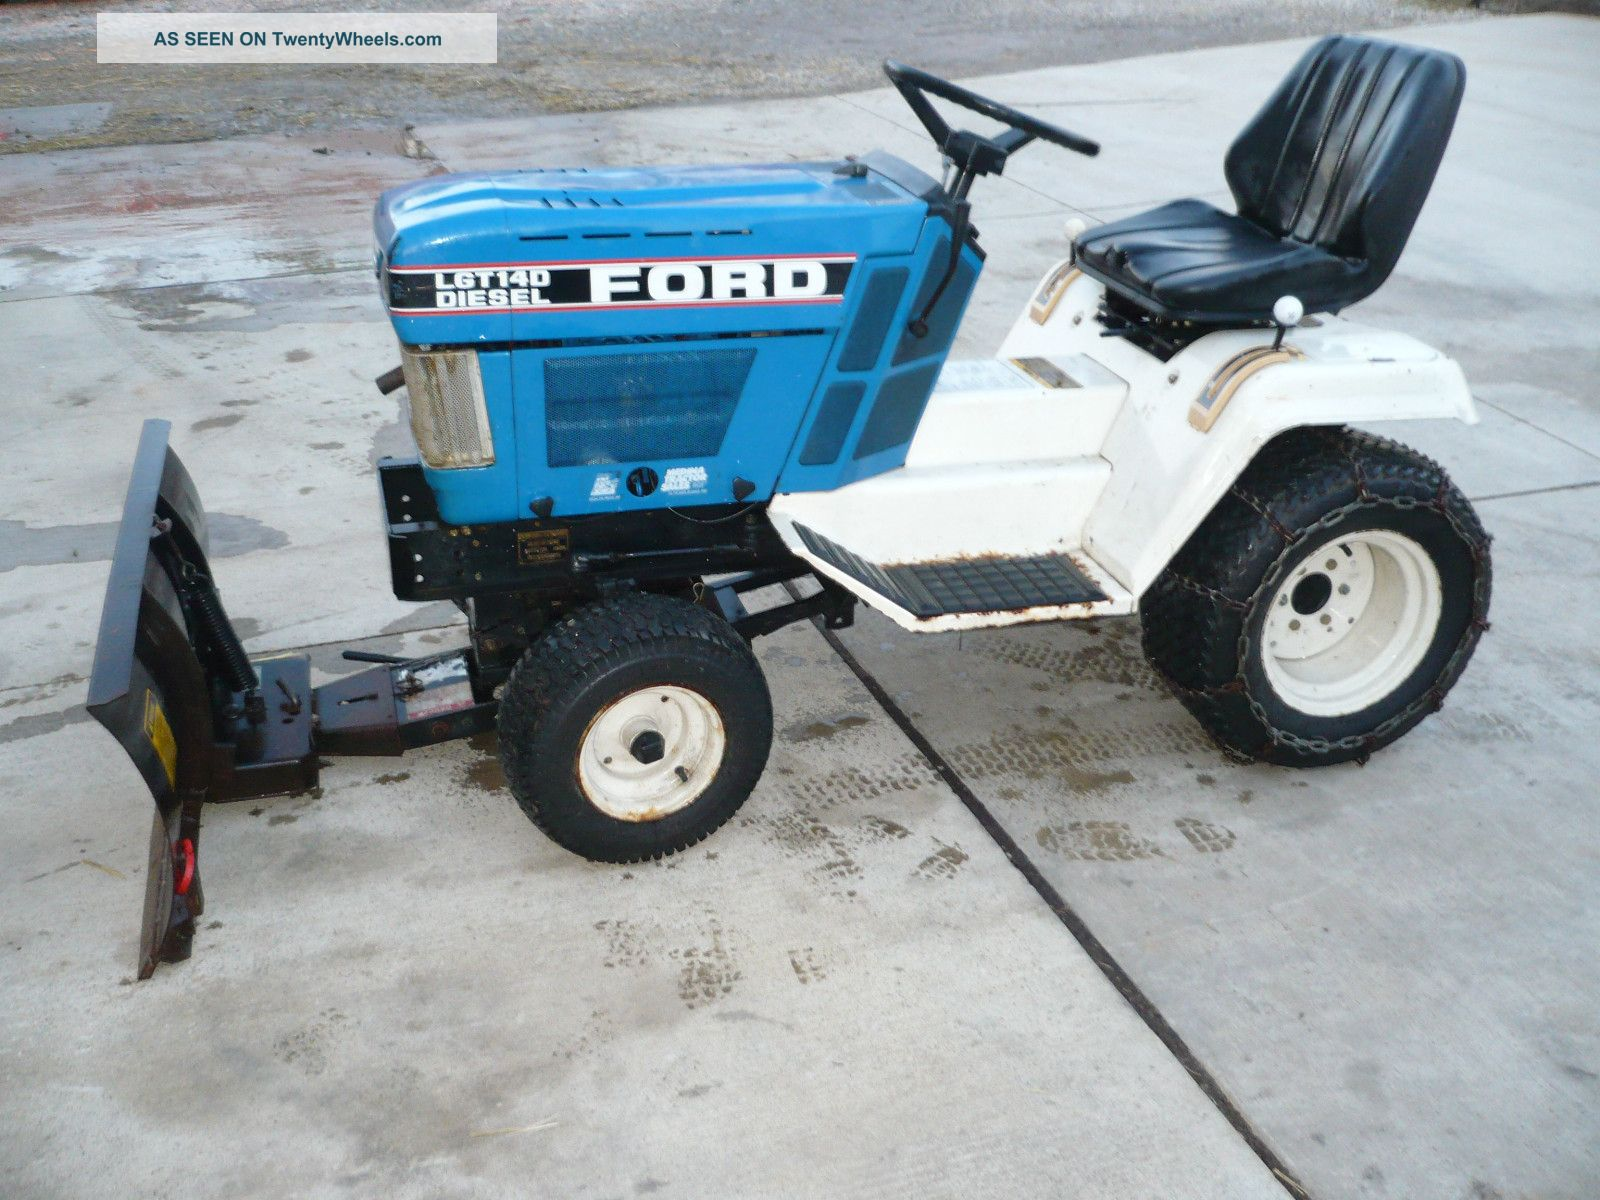 Ford Lgt 14d Garden Tractor Other photo